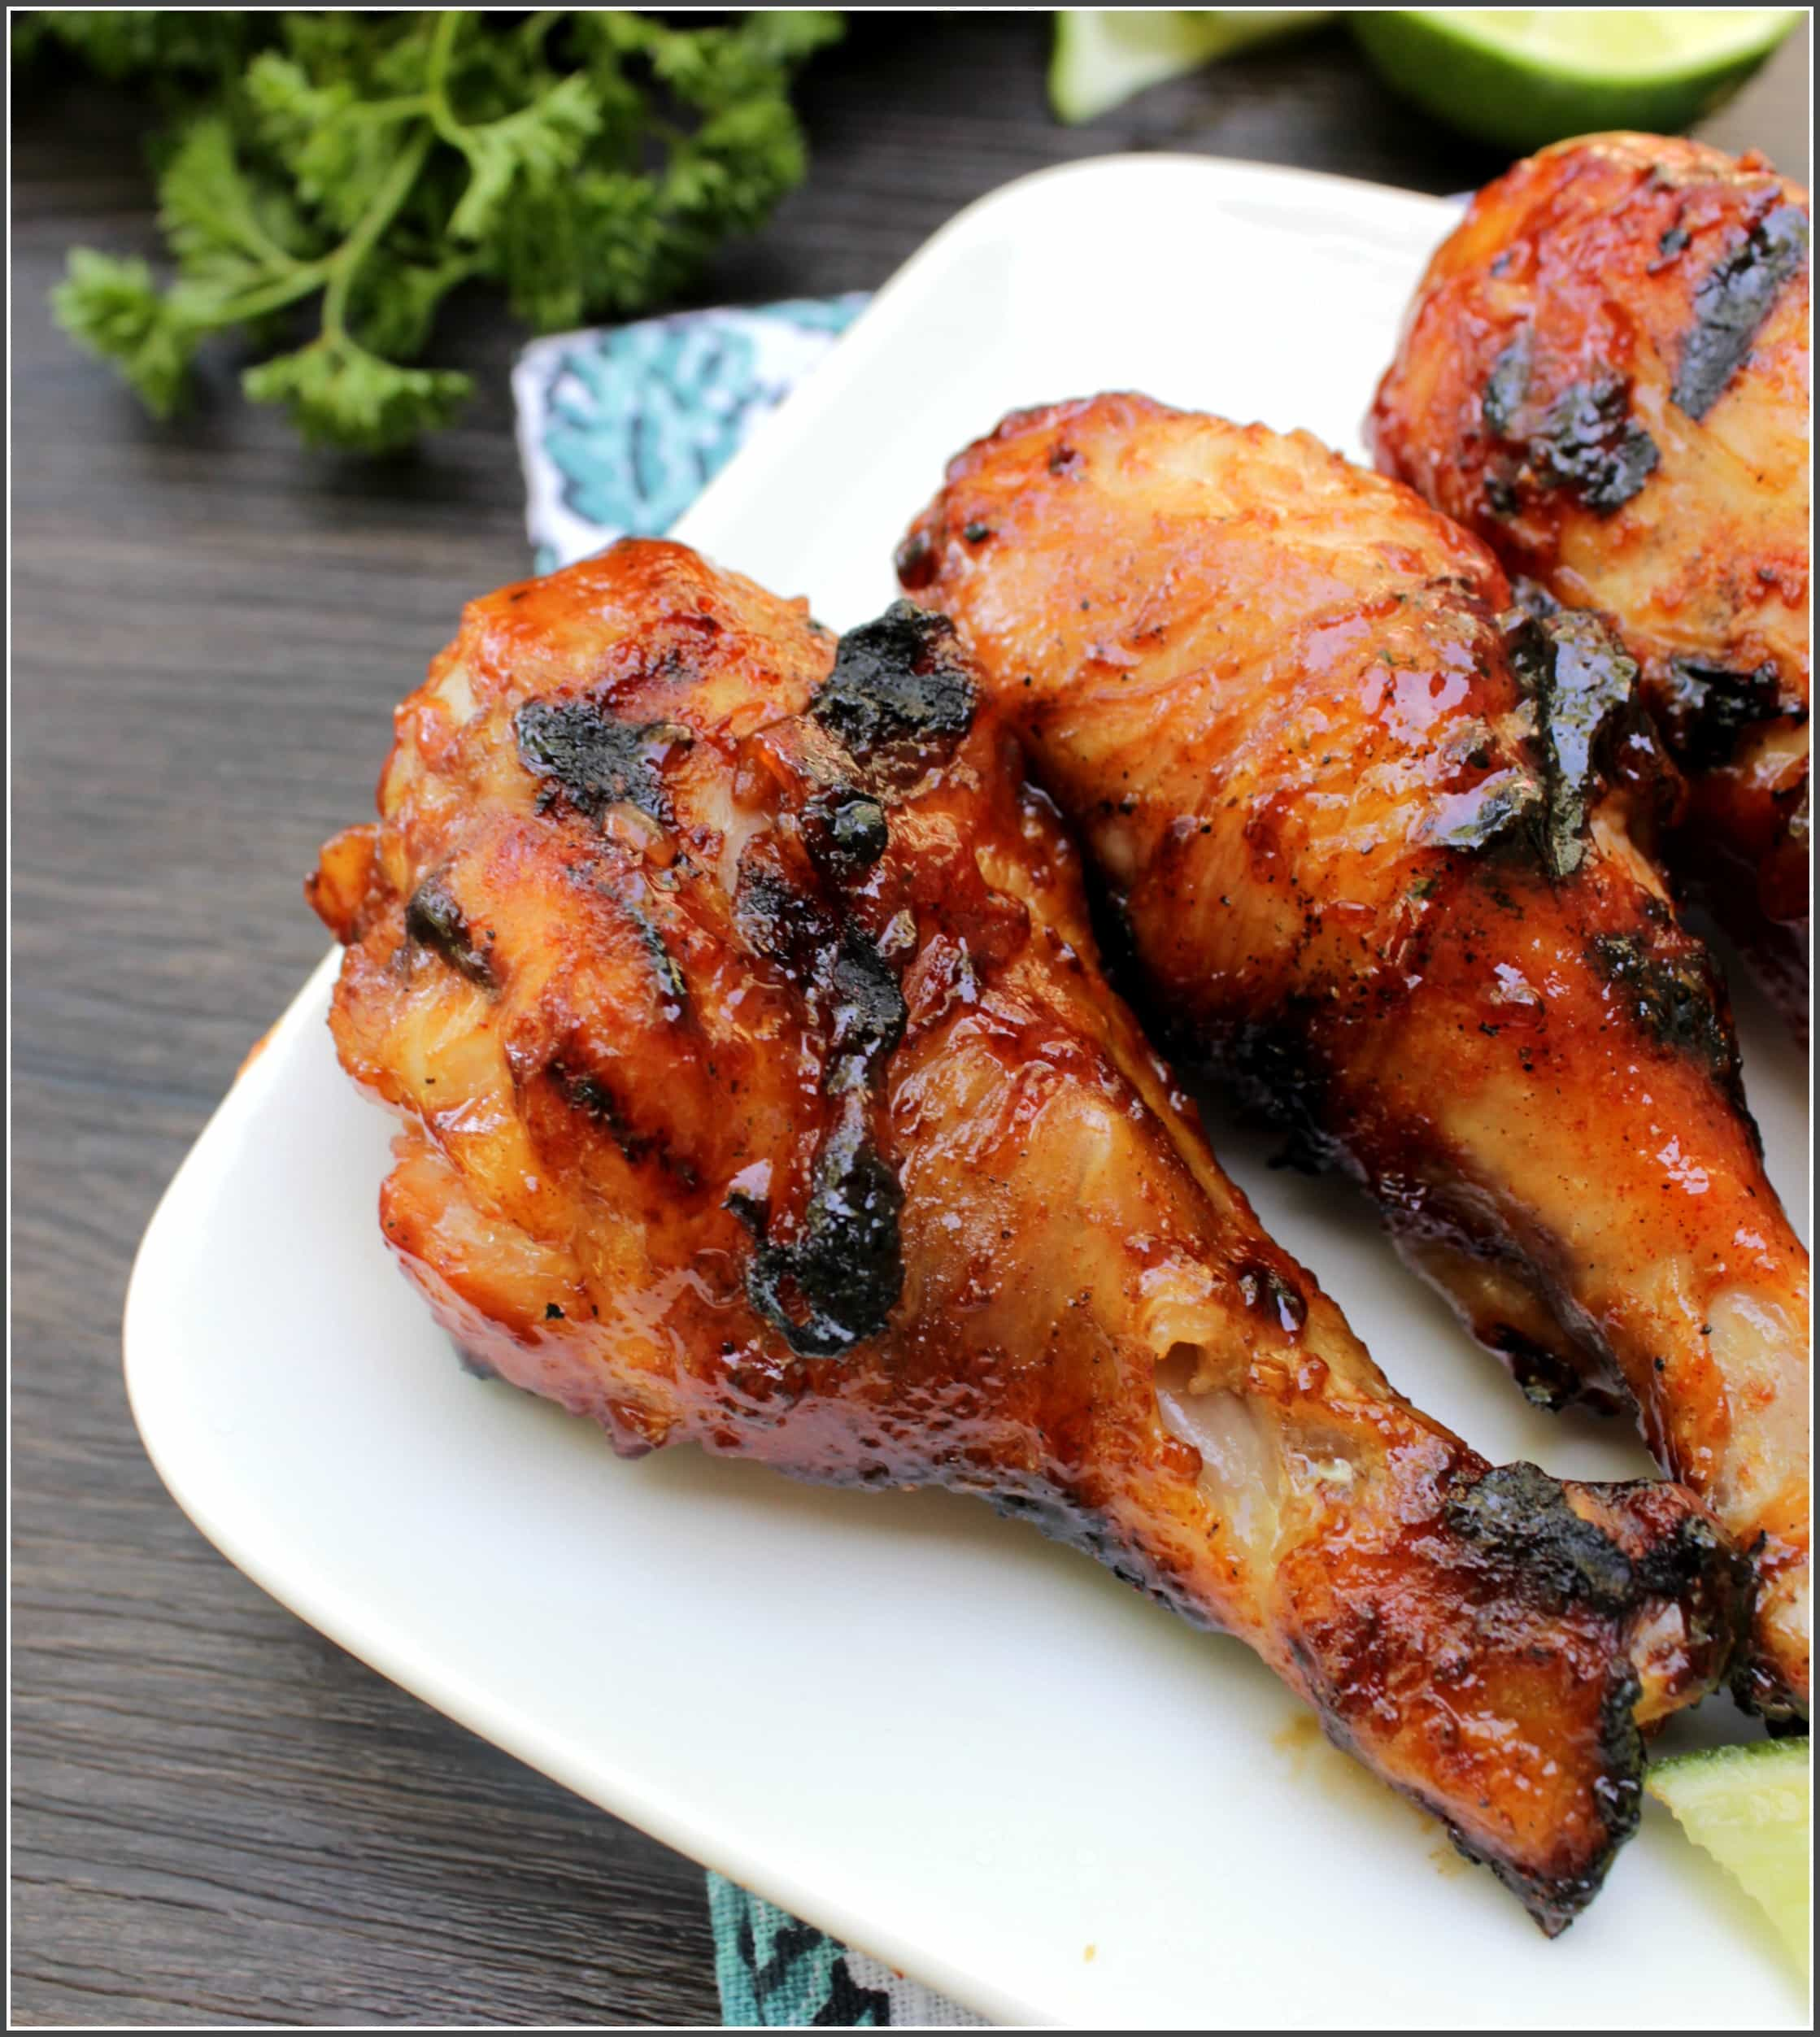 Honey Ginger Barbecue Chicken- with a touch of caramelized sweetness, this takes your traditional barbecue sauce and elevates it to a whole new level.